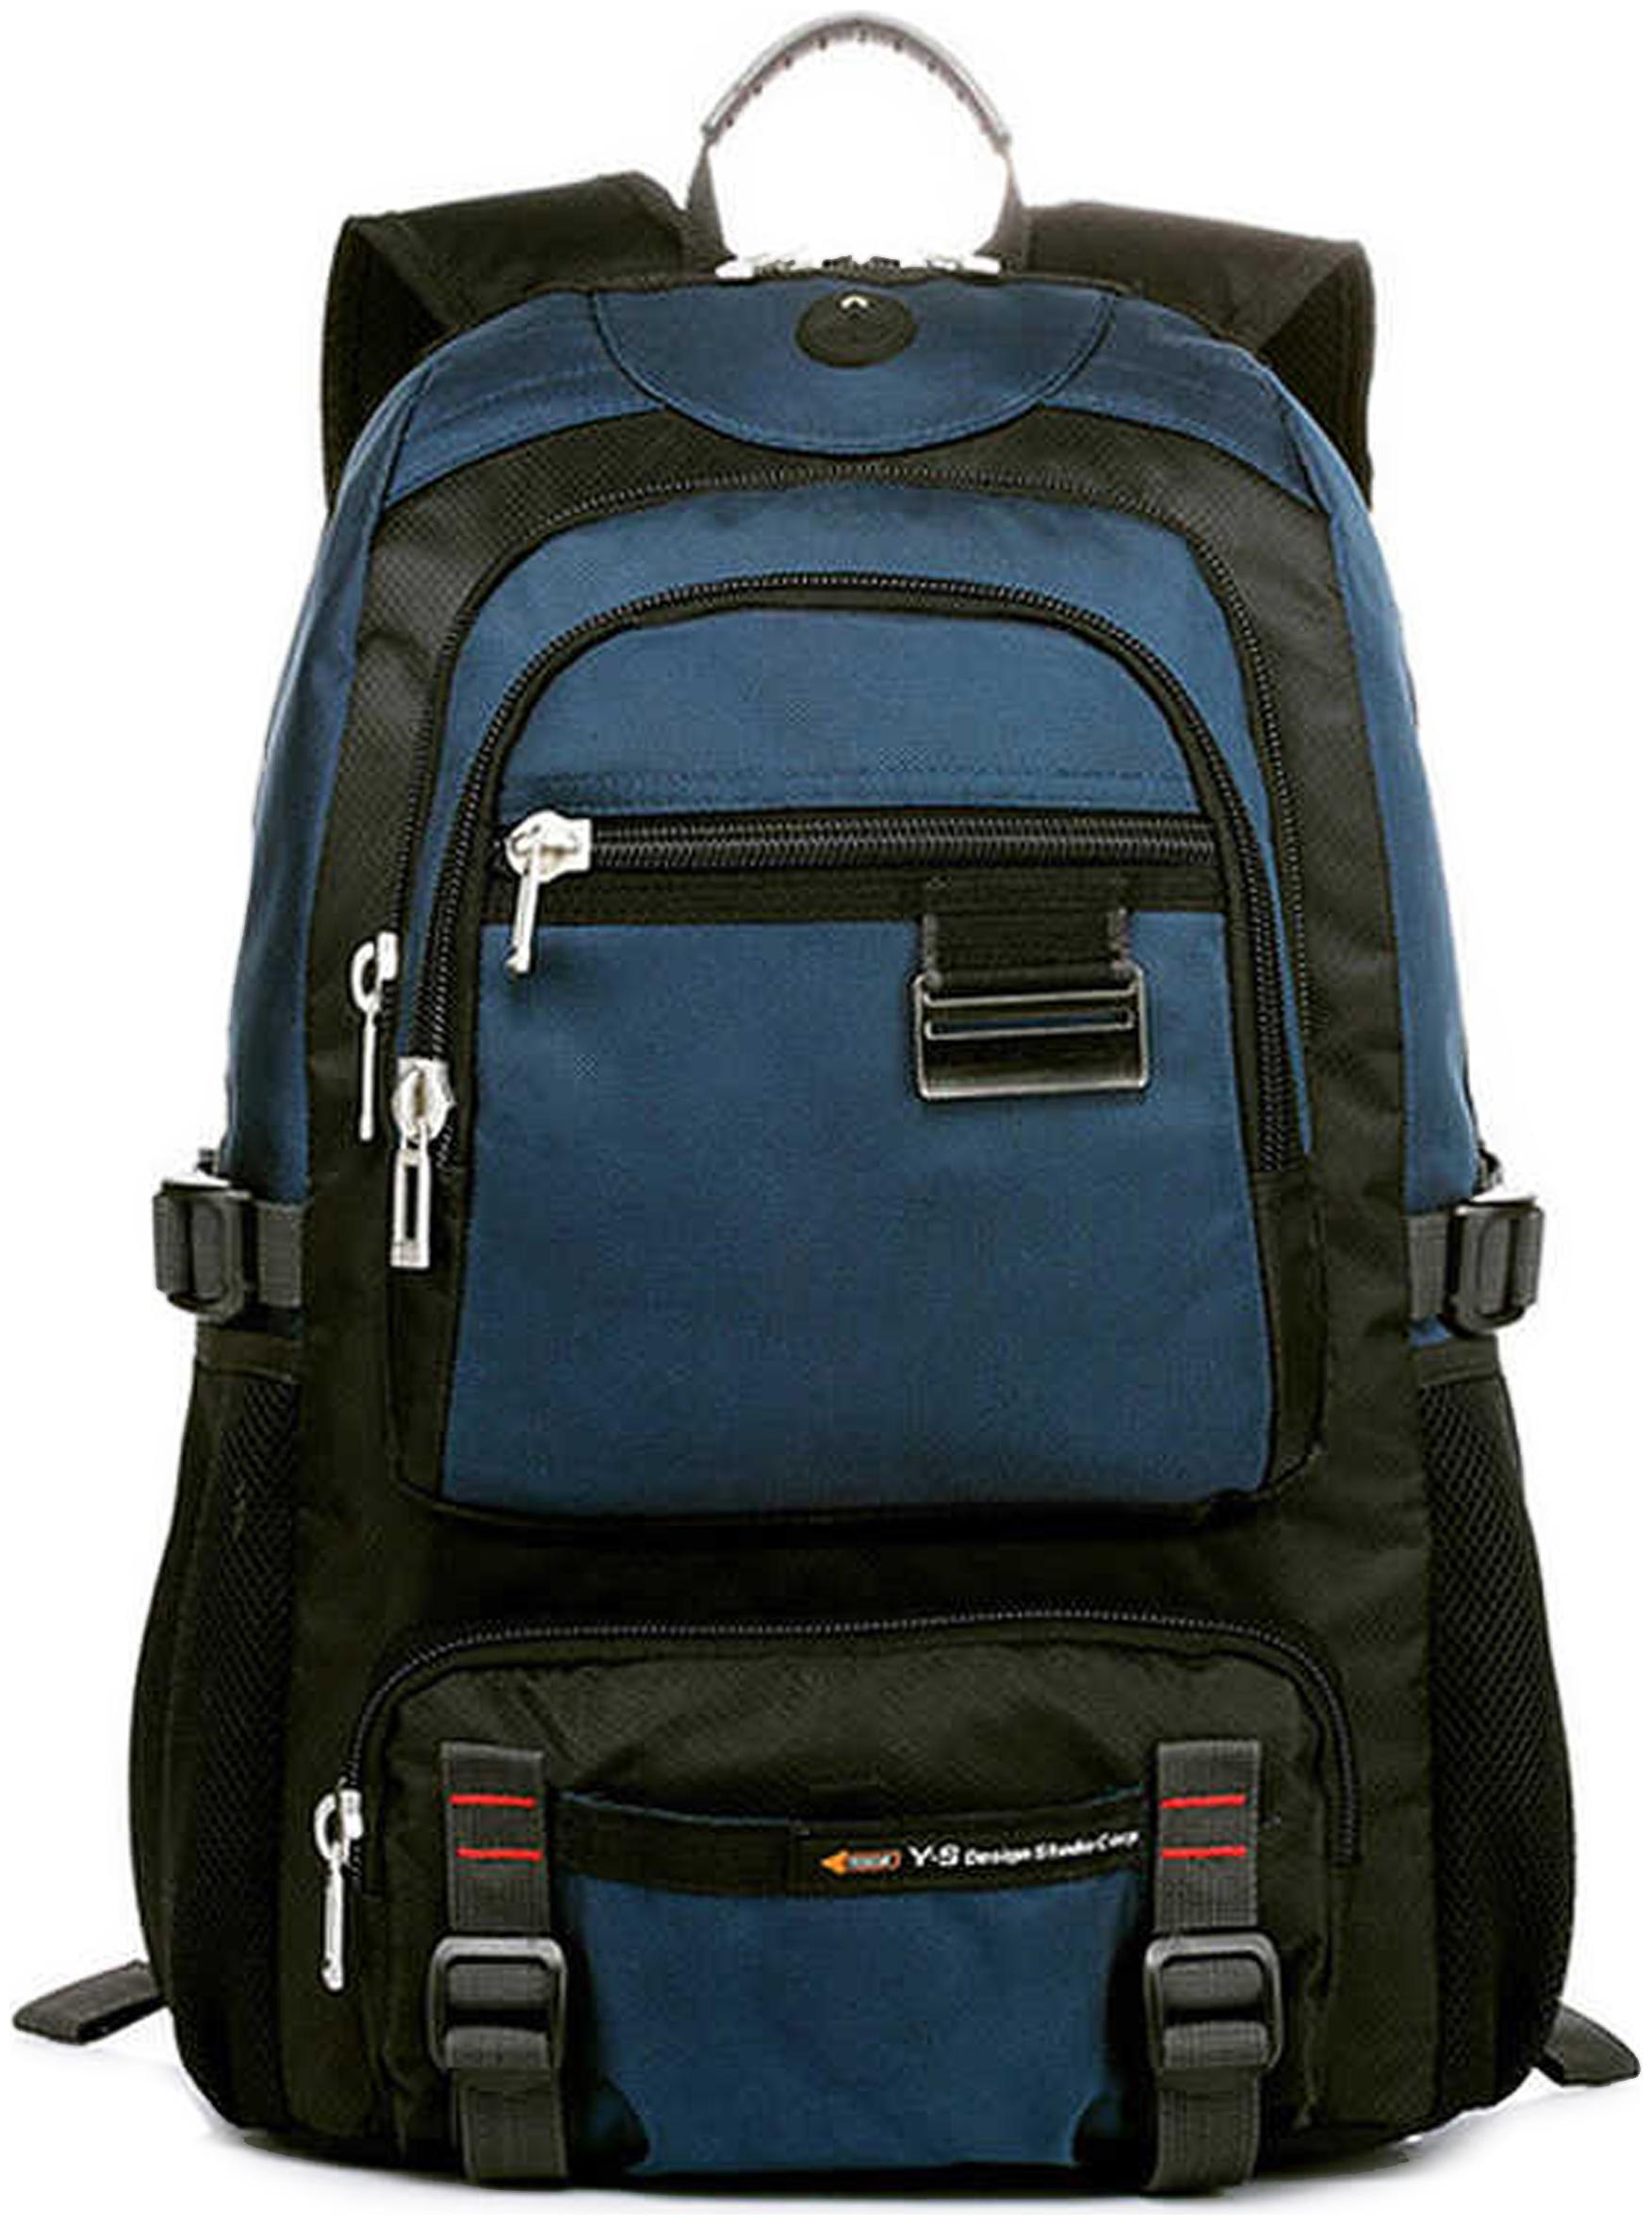 The Clownfish YESO Waterproof Polyester 20 litres Unisex Business Travel Laptop Backpack fits 15.6 inch laptops  BLUE  by Sky Venture